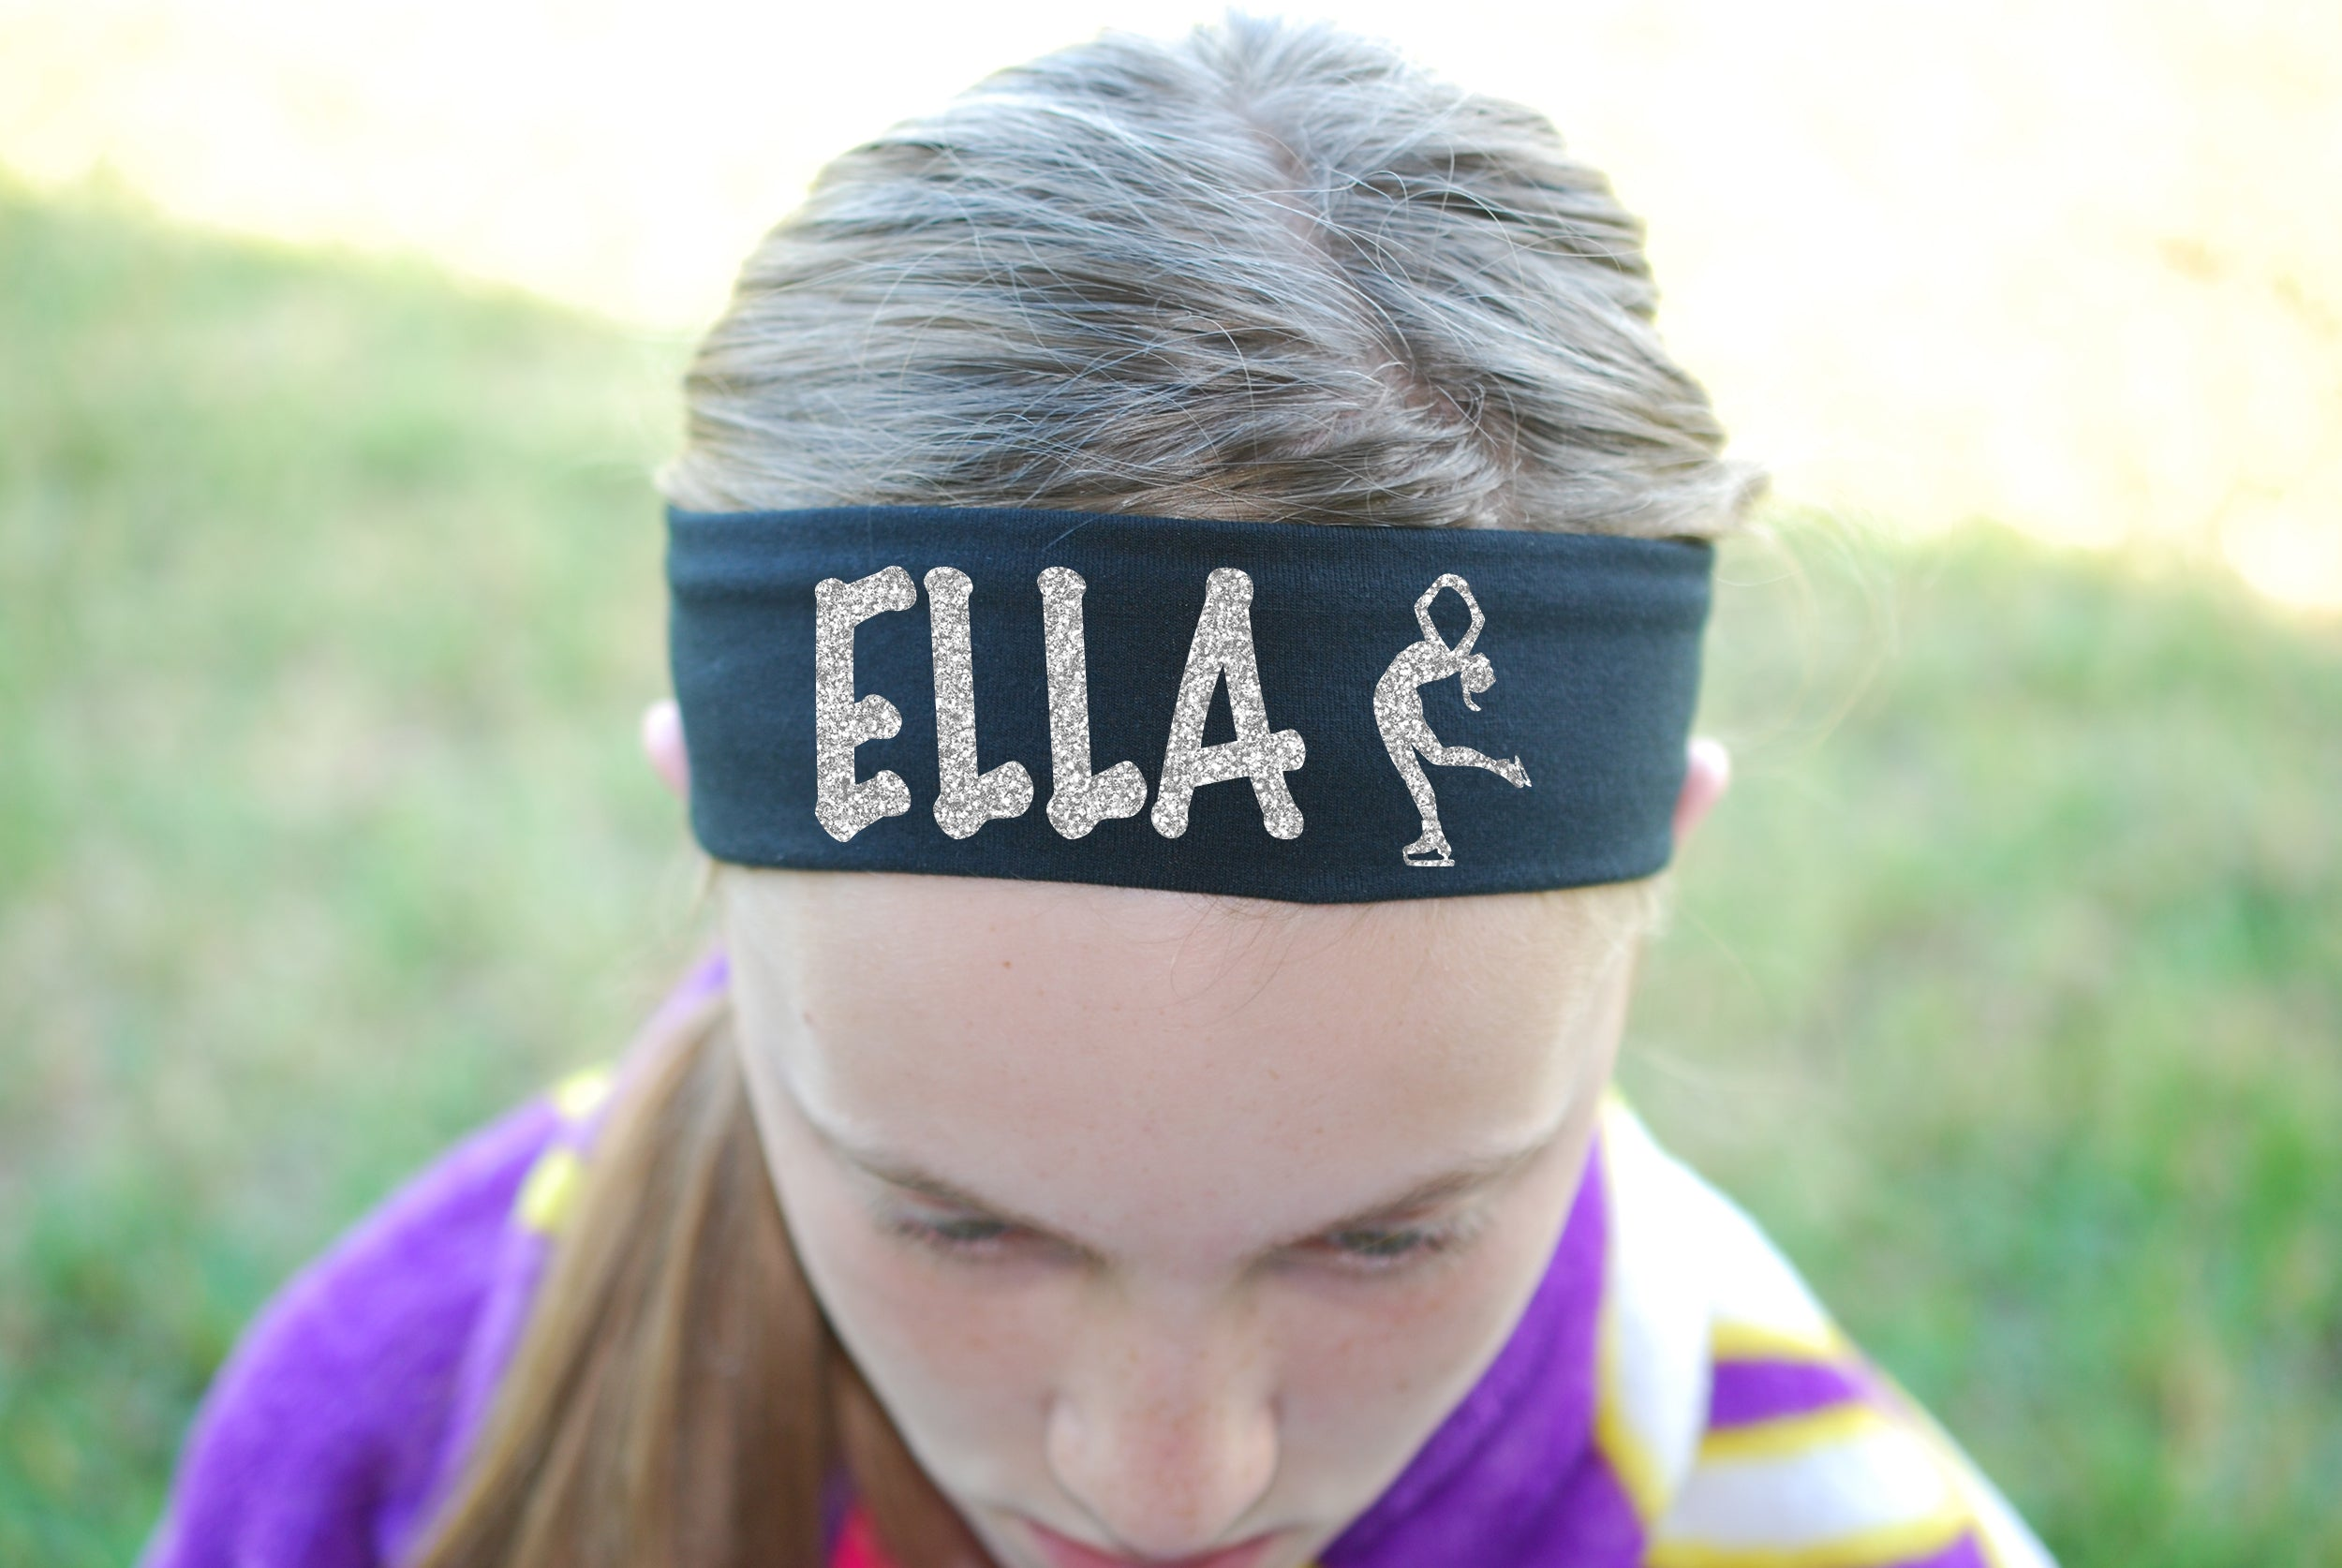 Custom Figure Skating Headband (Cotton/Lycra) - Sparkle Letters!